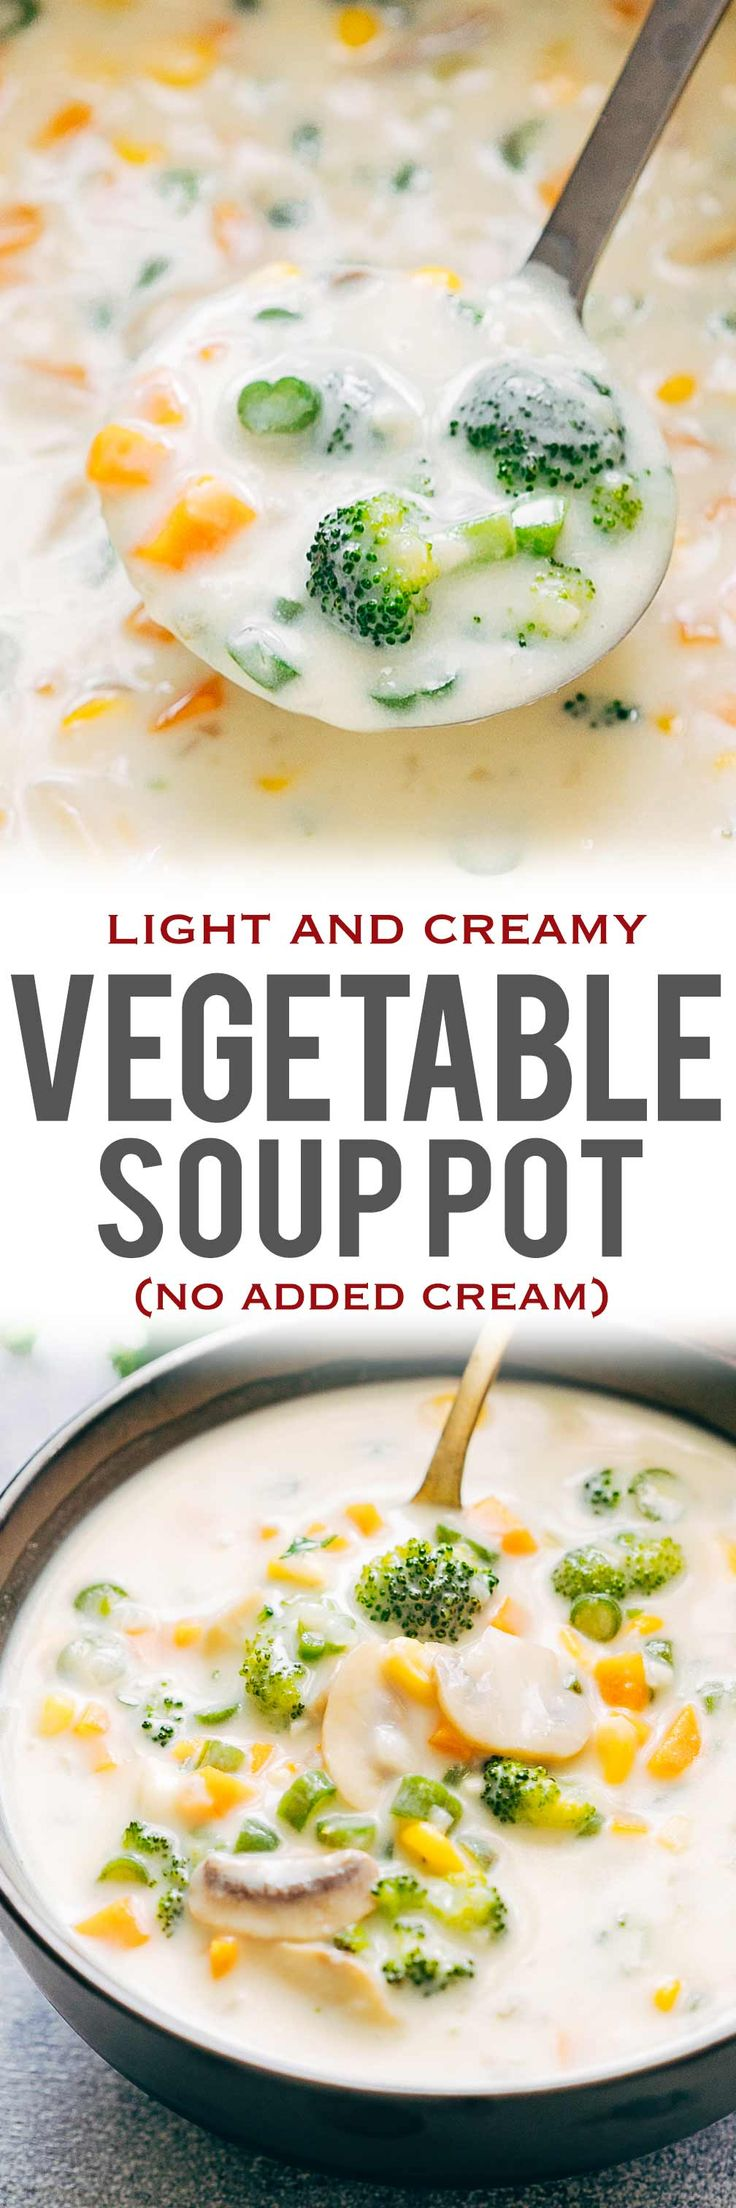 Homemade Creamy Vegetable Soup is an insanely delicious, creamy vegetable soup without any cream. Its perfect if you are looking for a vegetarian meal or just something light and easy. Add chicken, pasta, ham or shrimp to amp up this cream of vegetable soup via @my_foodstory